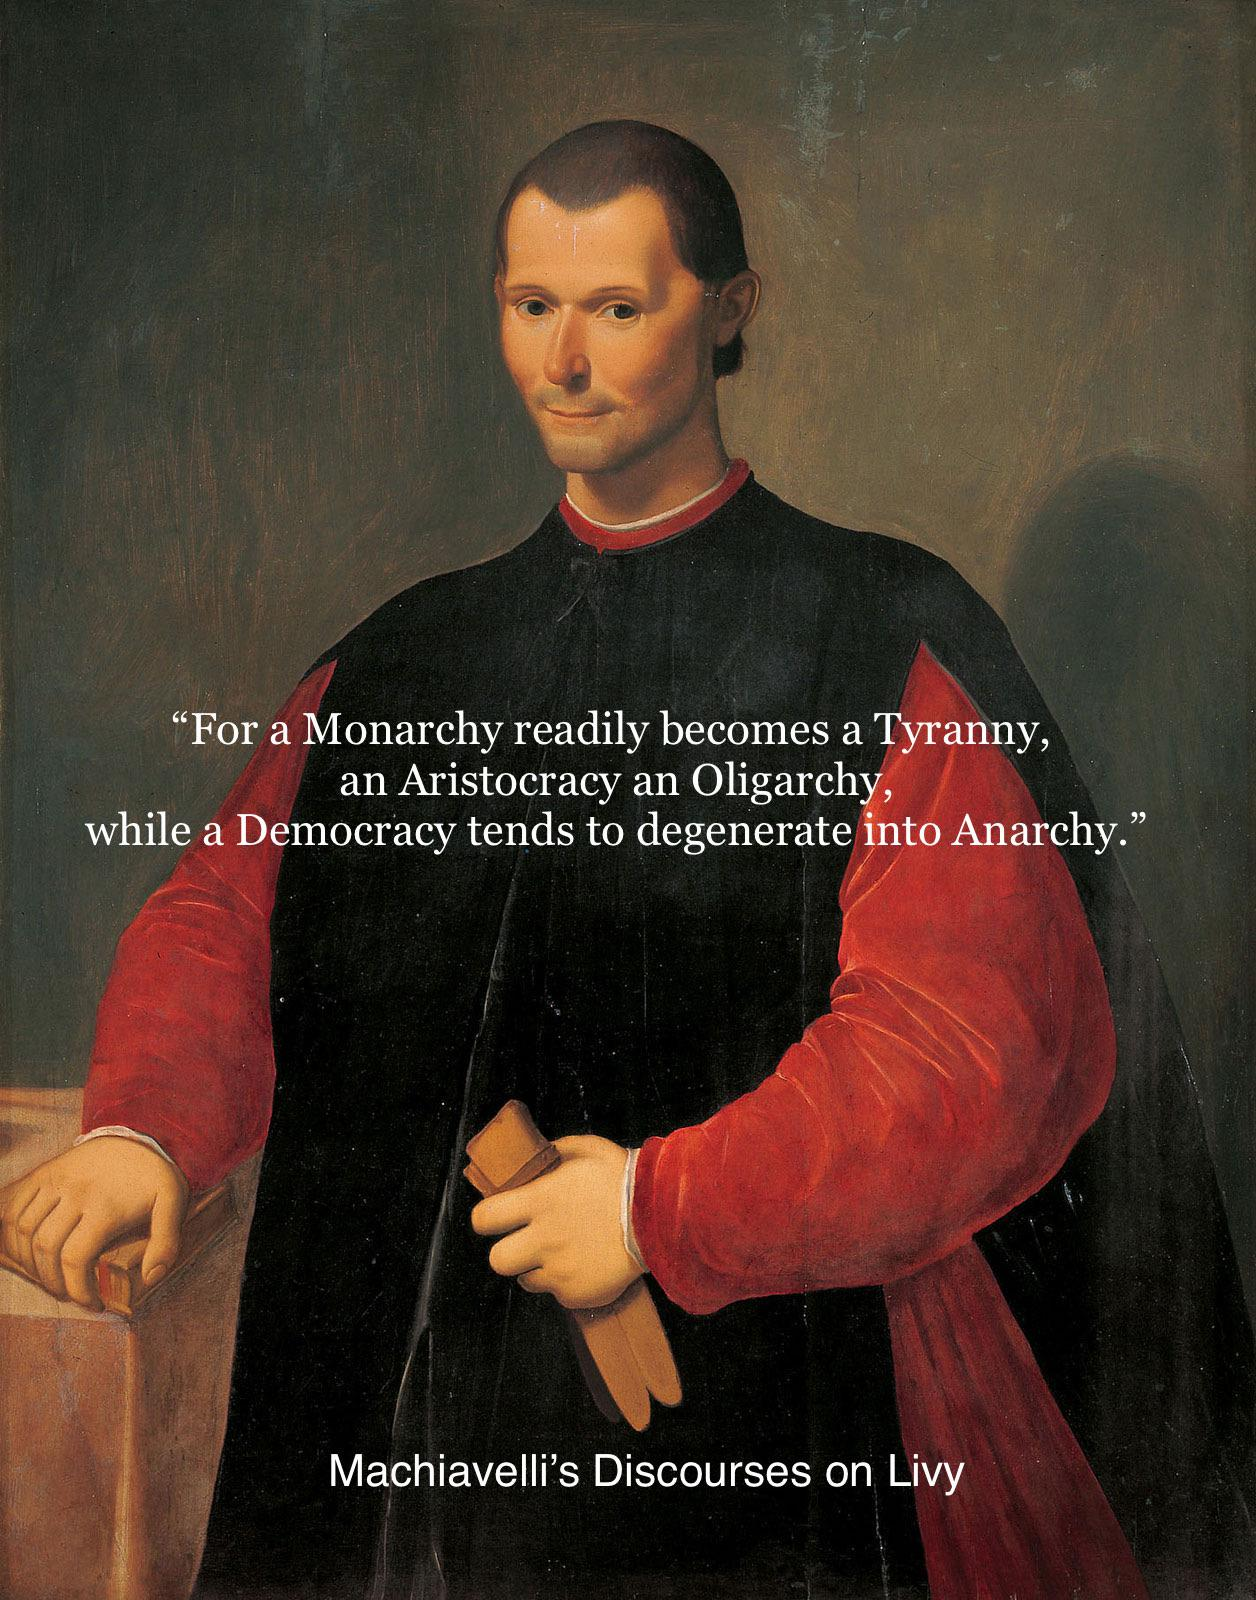 """Democracy tends to degenerate into anarchy"" Machiavelli Discourages onLivy (8:10)"